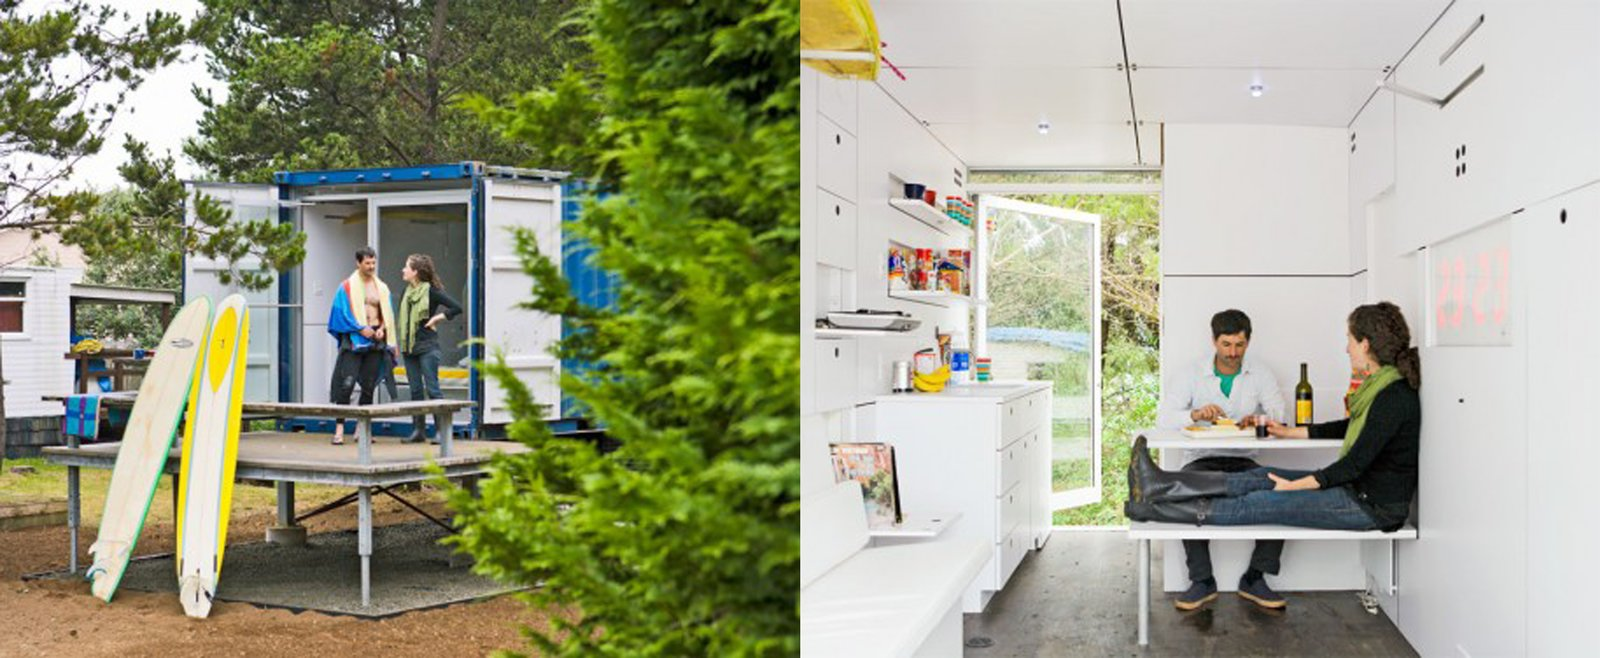 Hartman Kable designed the Surfshack to include loads of built-in, fold-down furniture to keep the 160-square-foot container clutter free. Check out this video tour of the project and watch extra closely at about 49 seconds in to see a Dwell cameo.  Shipping Containers by Dwell from Amazing Examples of Shipping Container Architecture